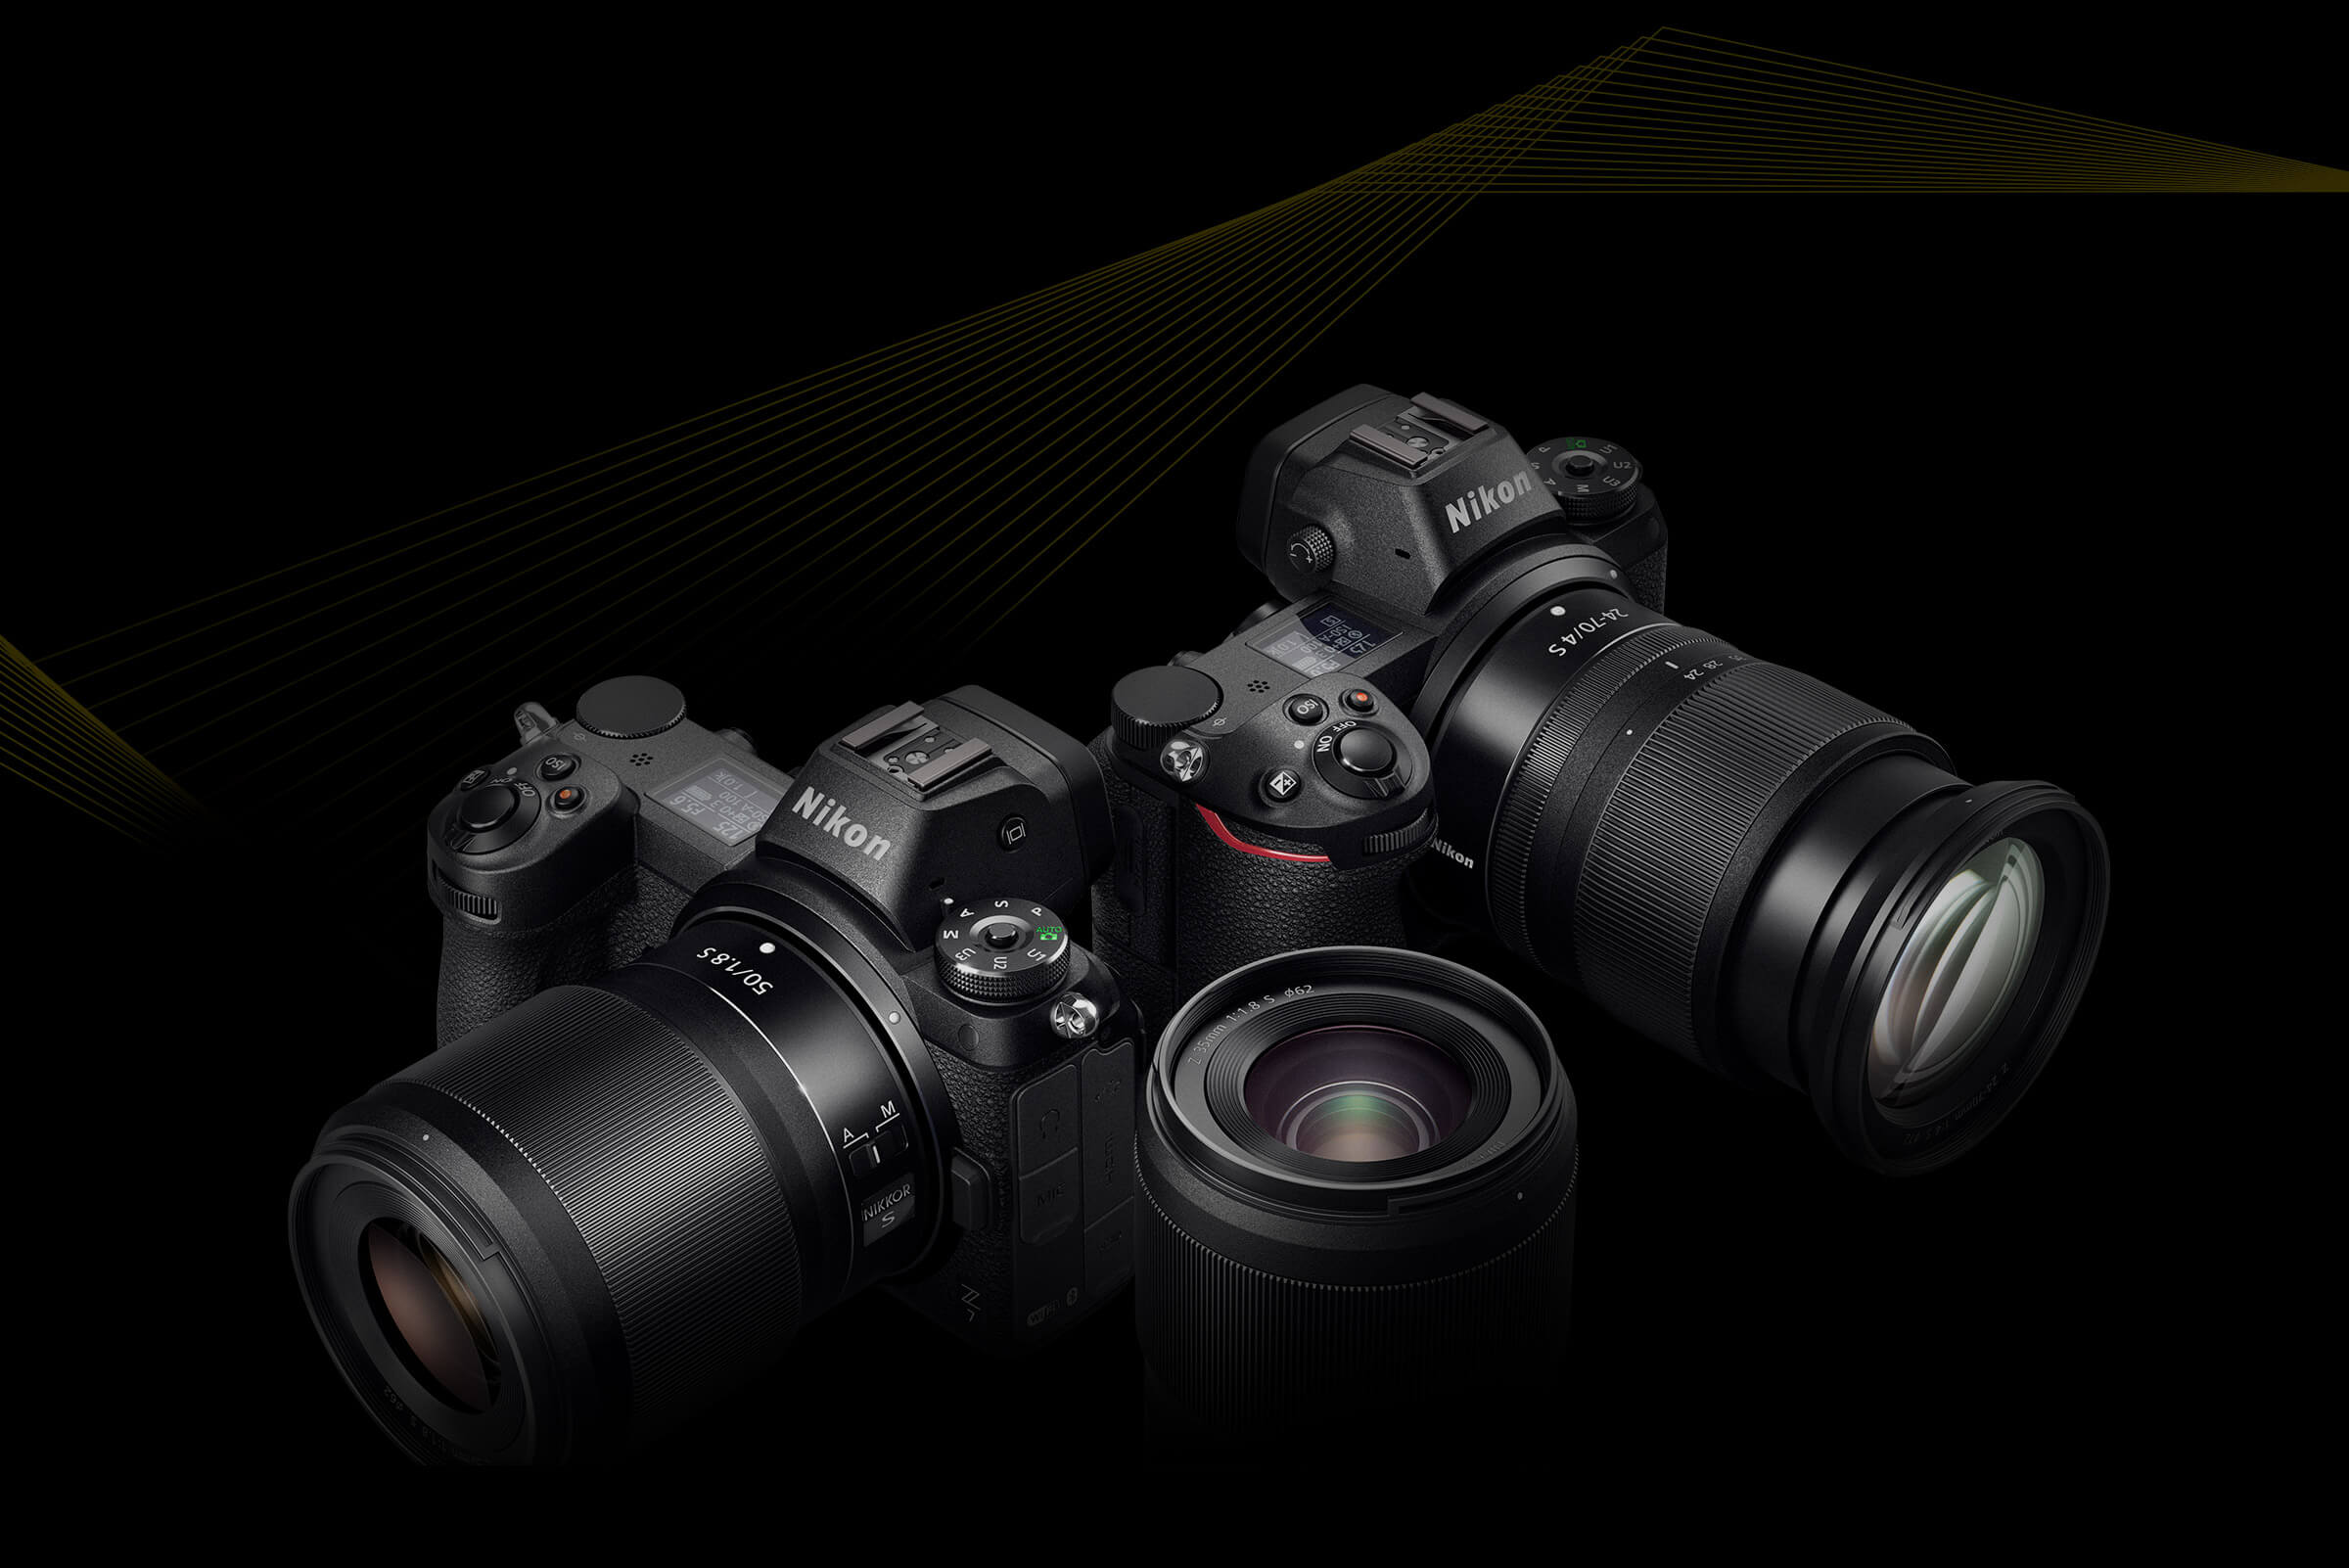 Nikon embraces a mirrorless future with Z series cameras and